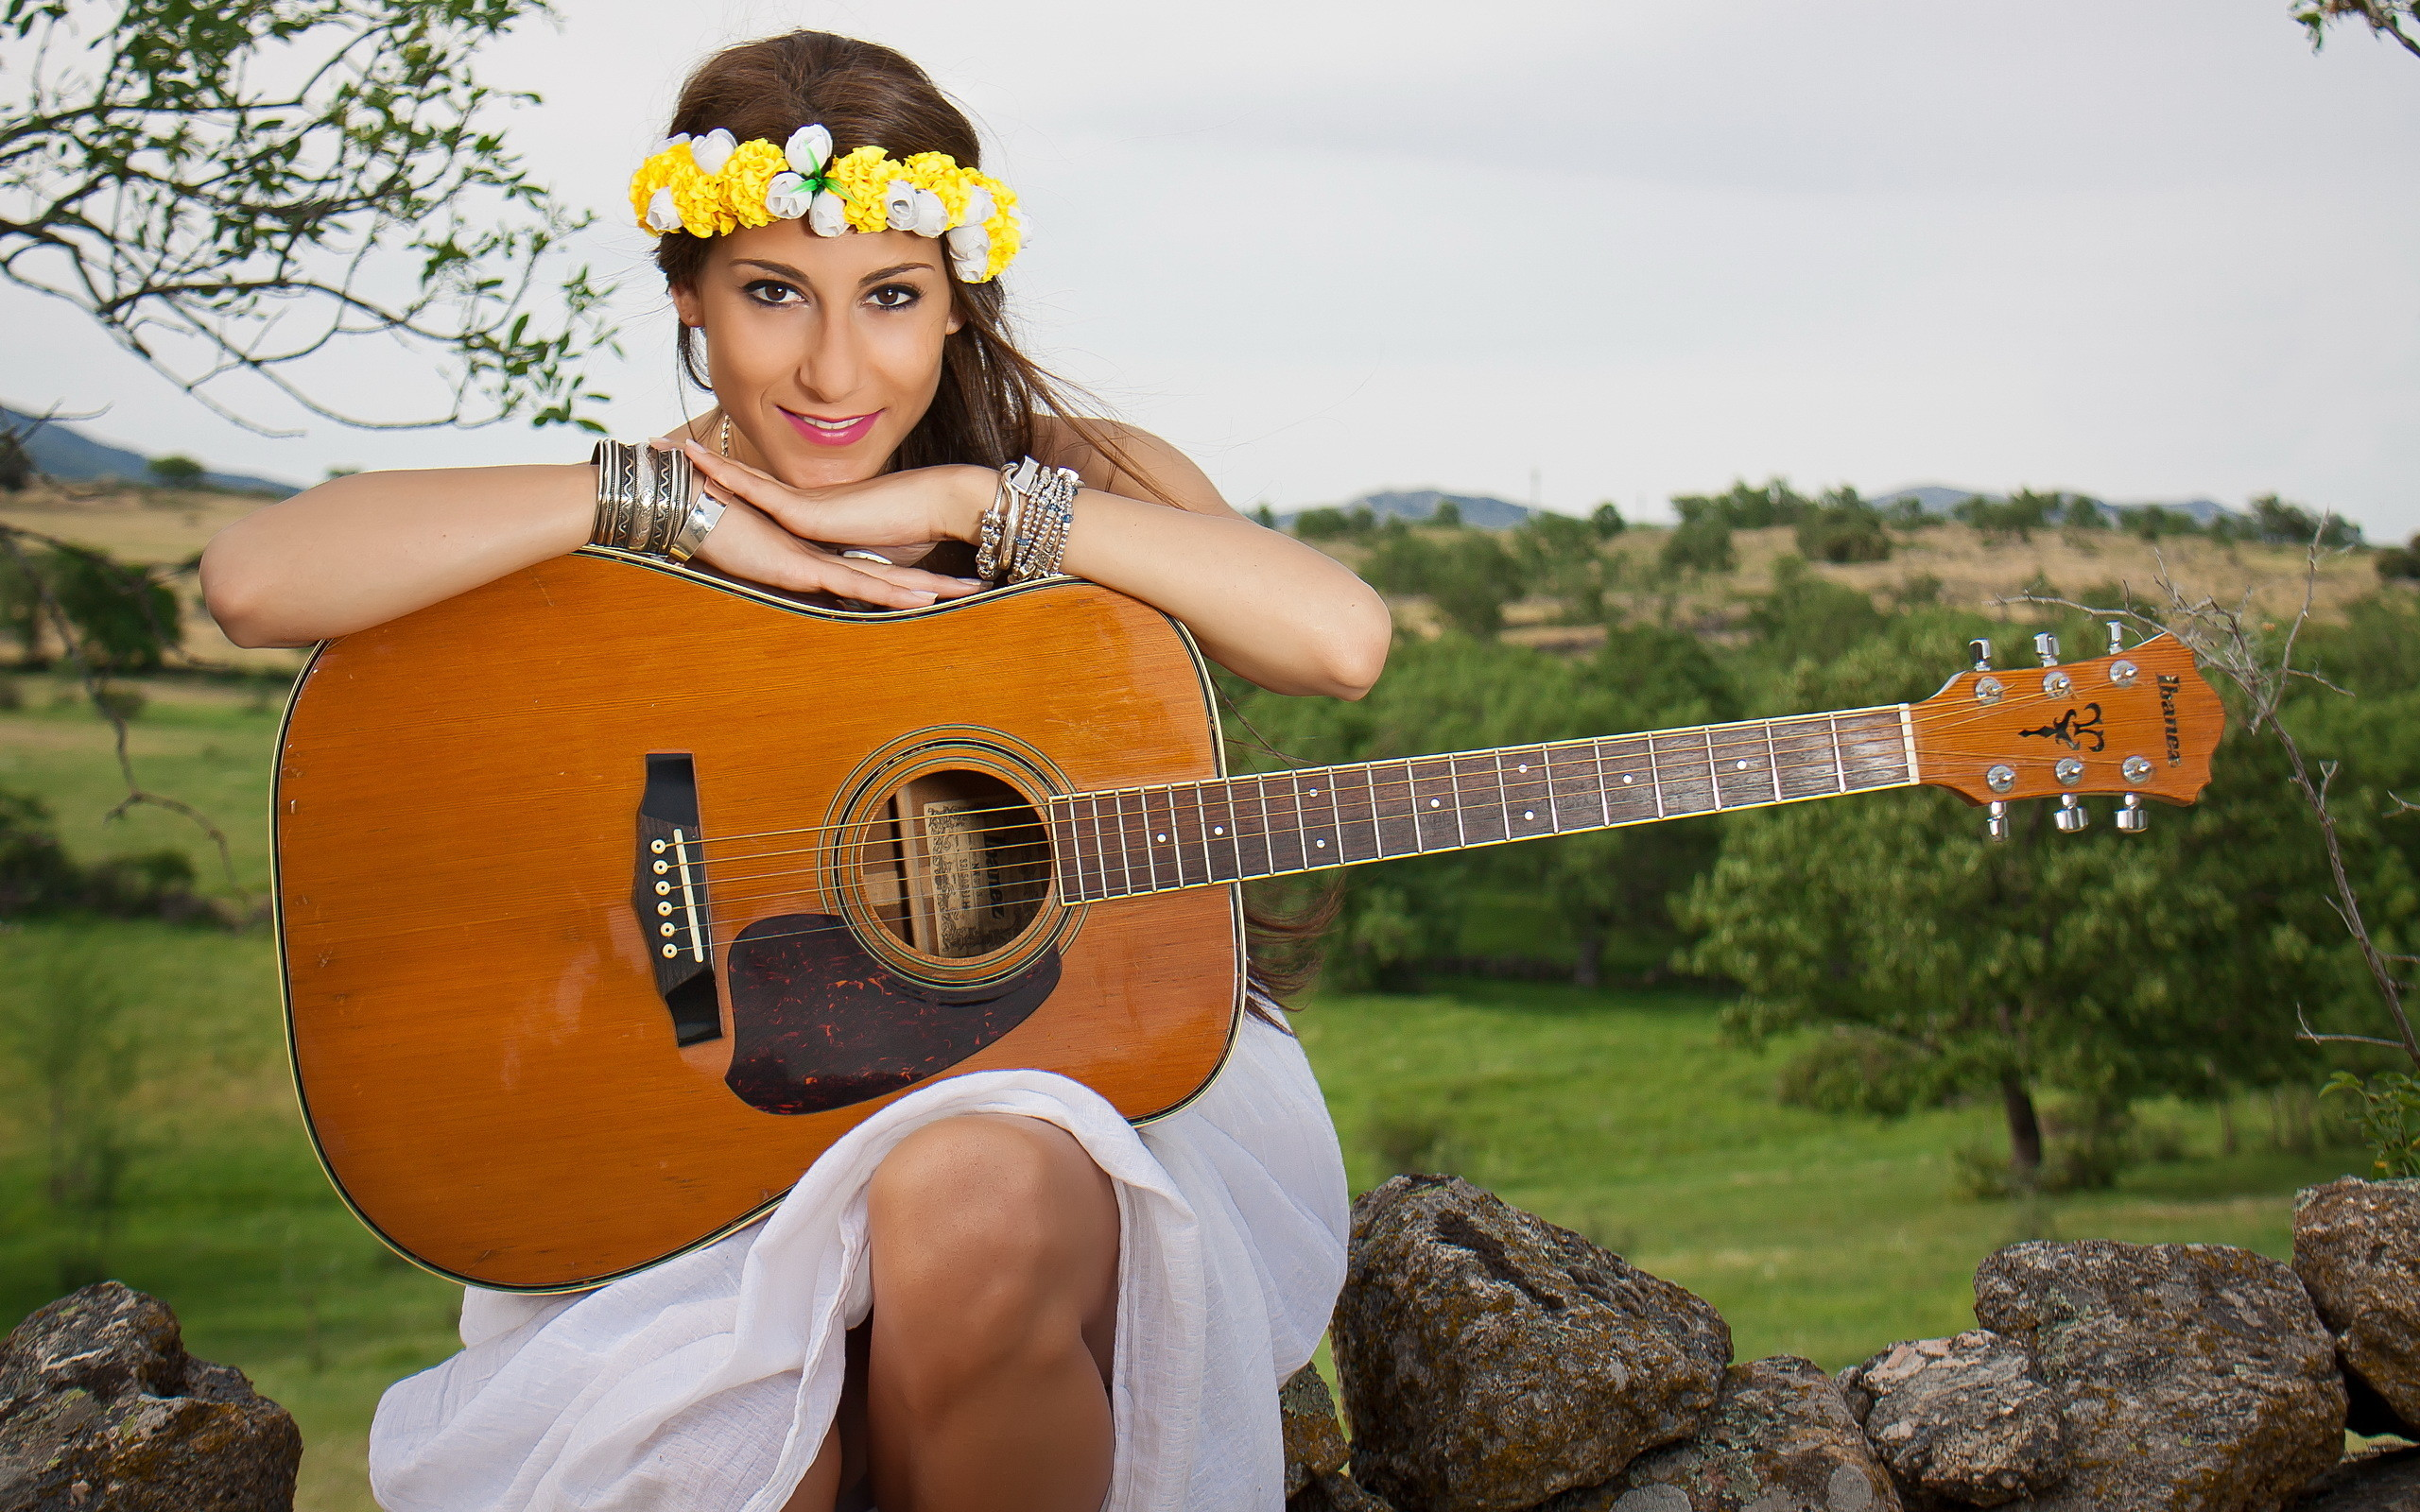 2560x1600 Girl guitar music background country singer photo field.